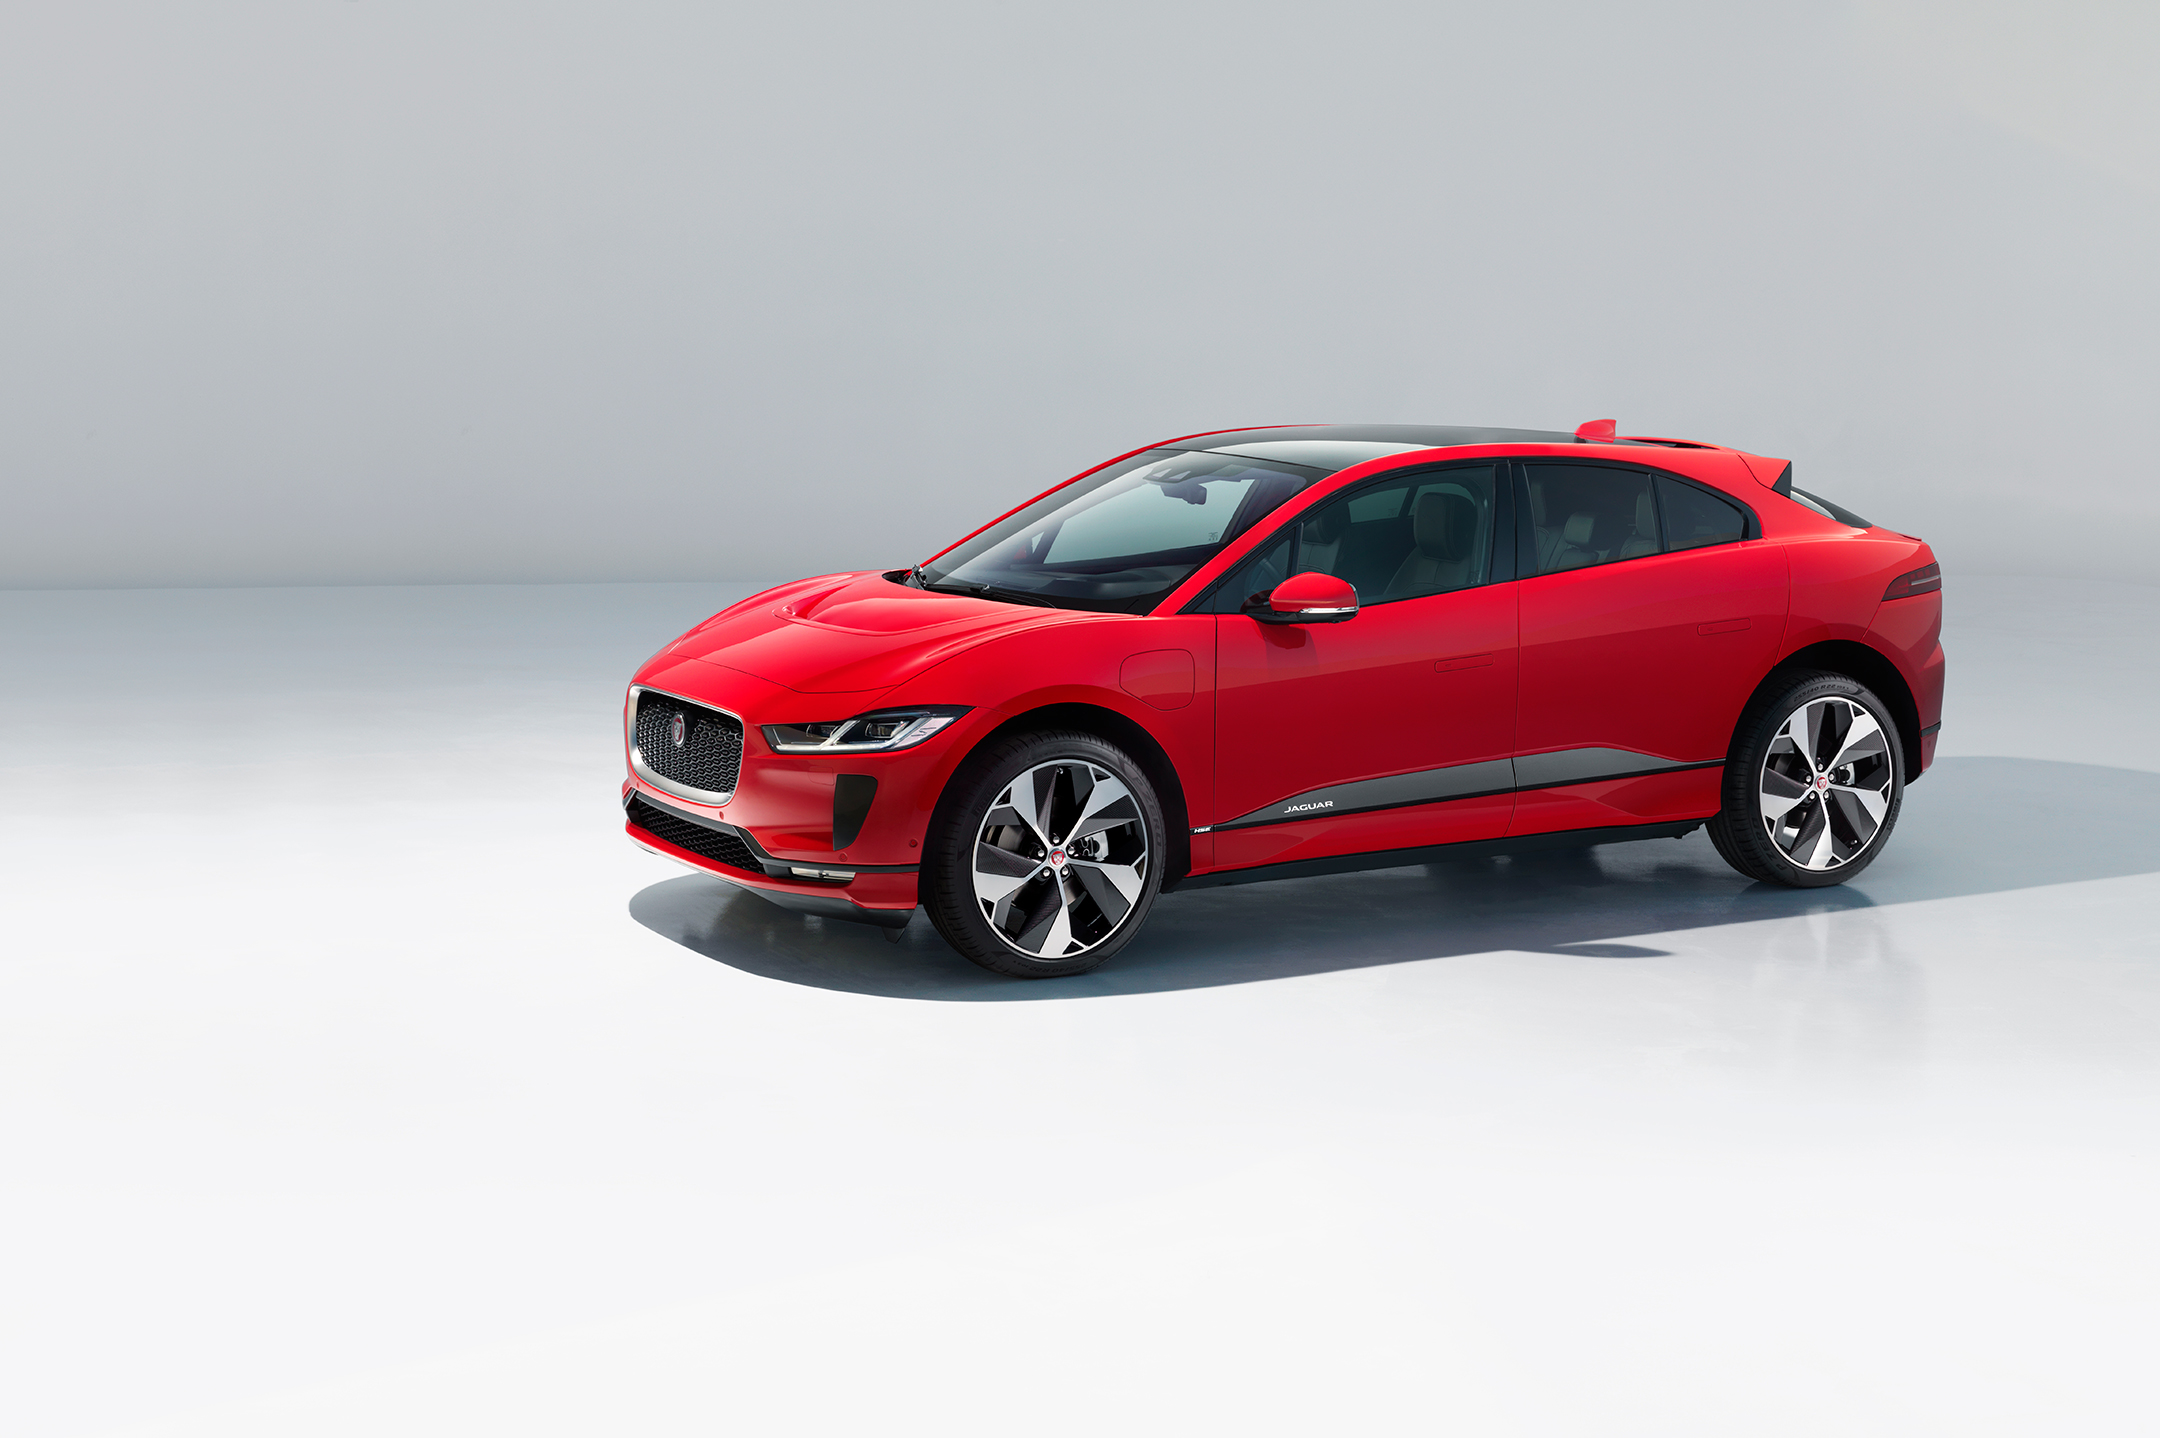 Jaguar I-PACE - 2018 - side-face / profil